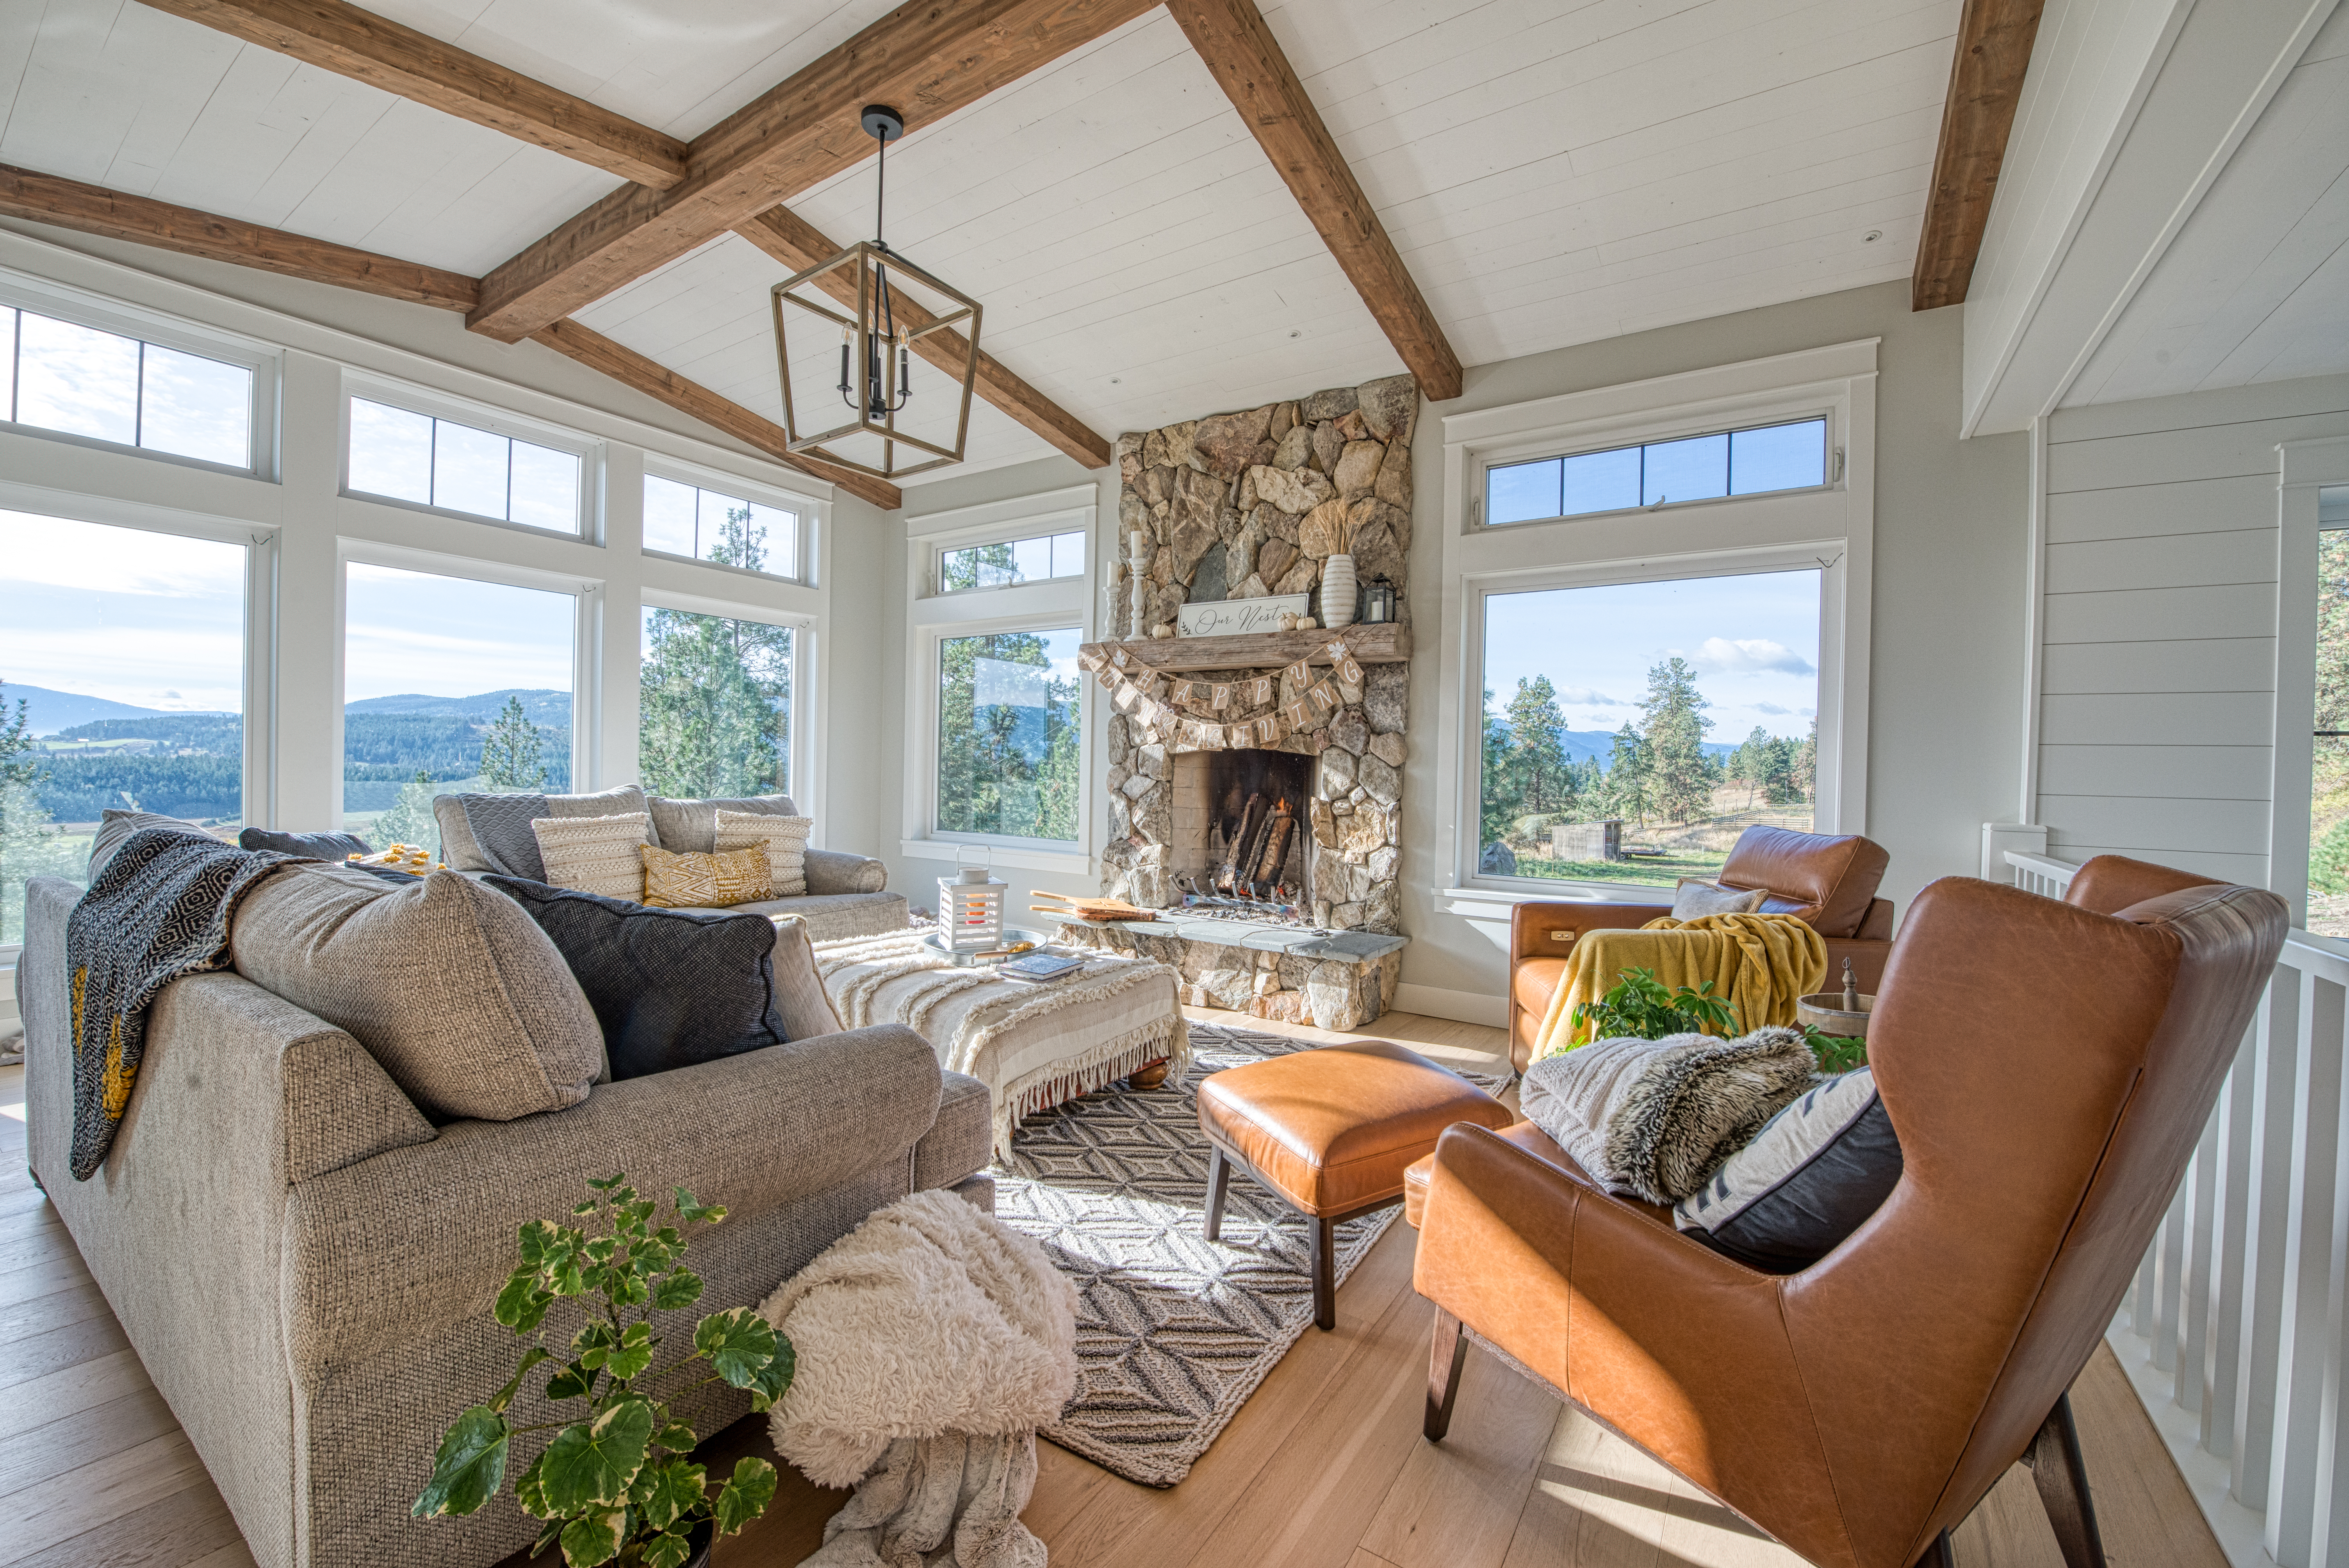 living room off the kitchen exposing amazing valley view